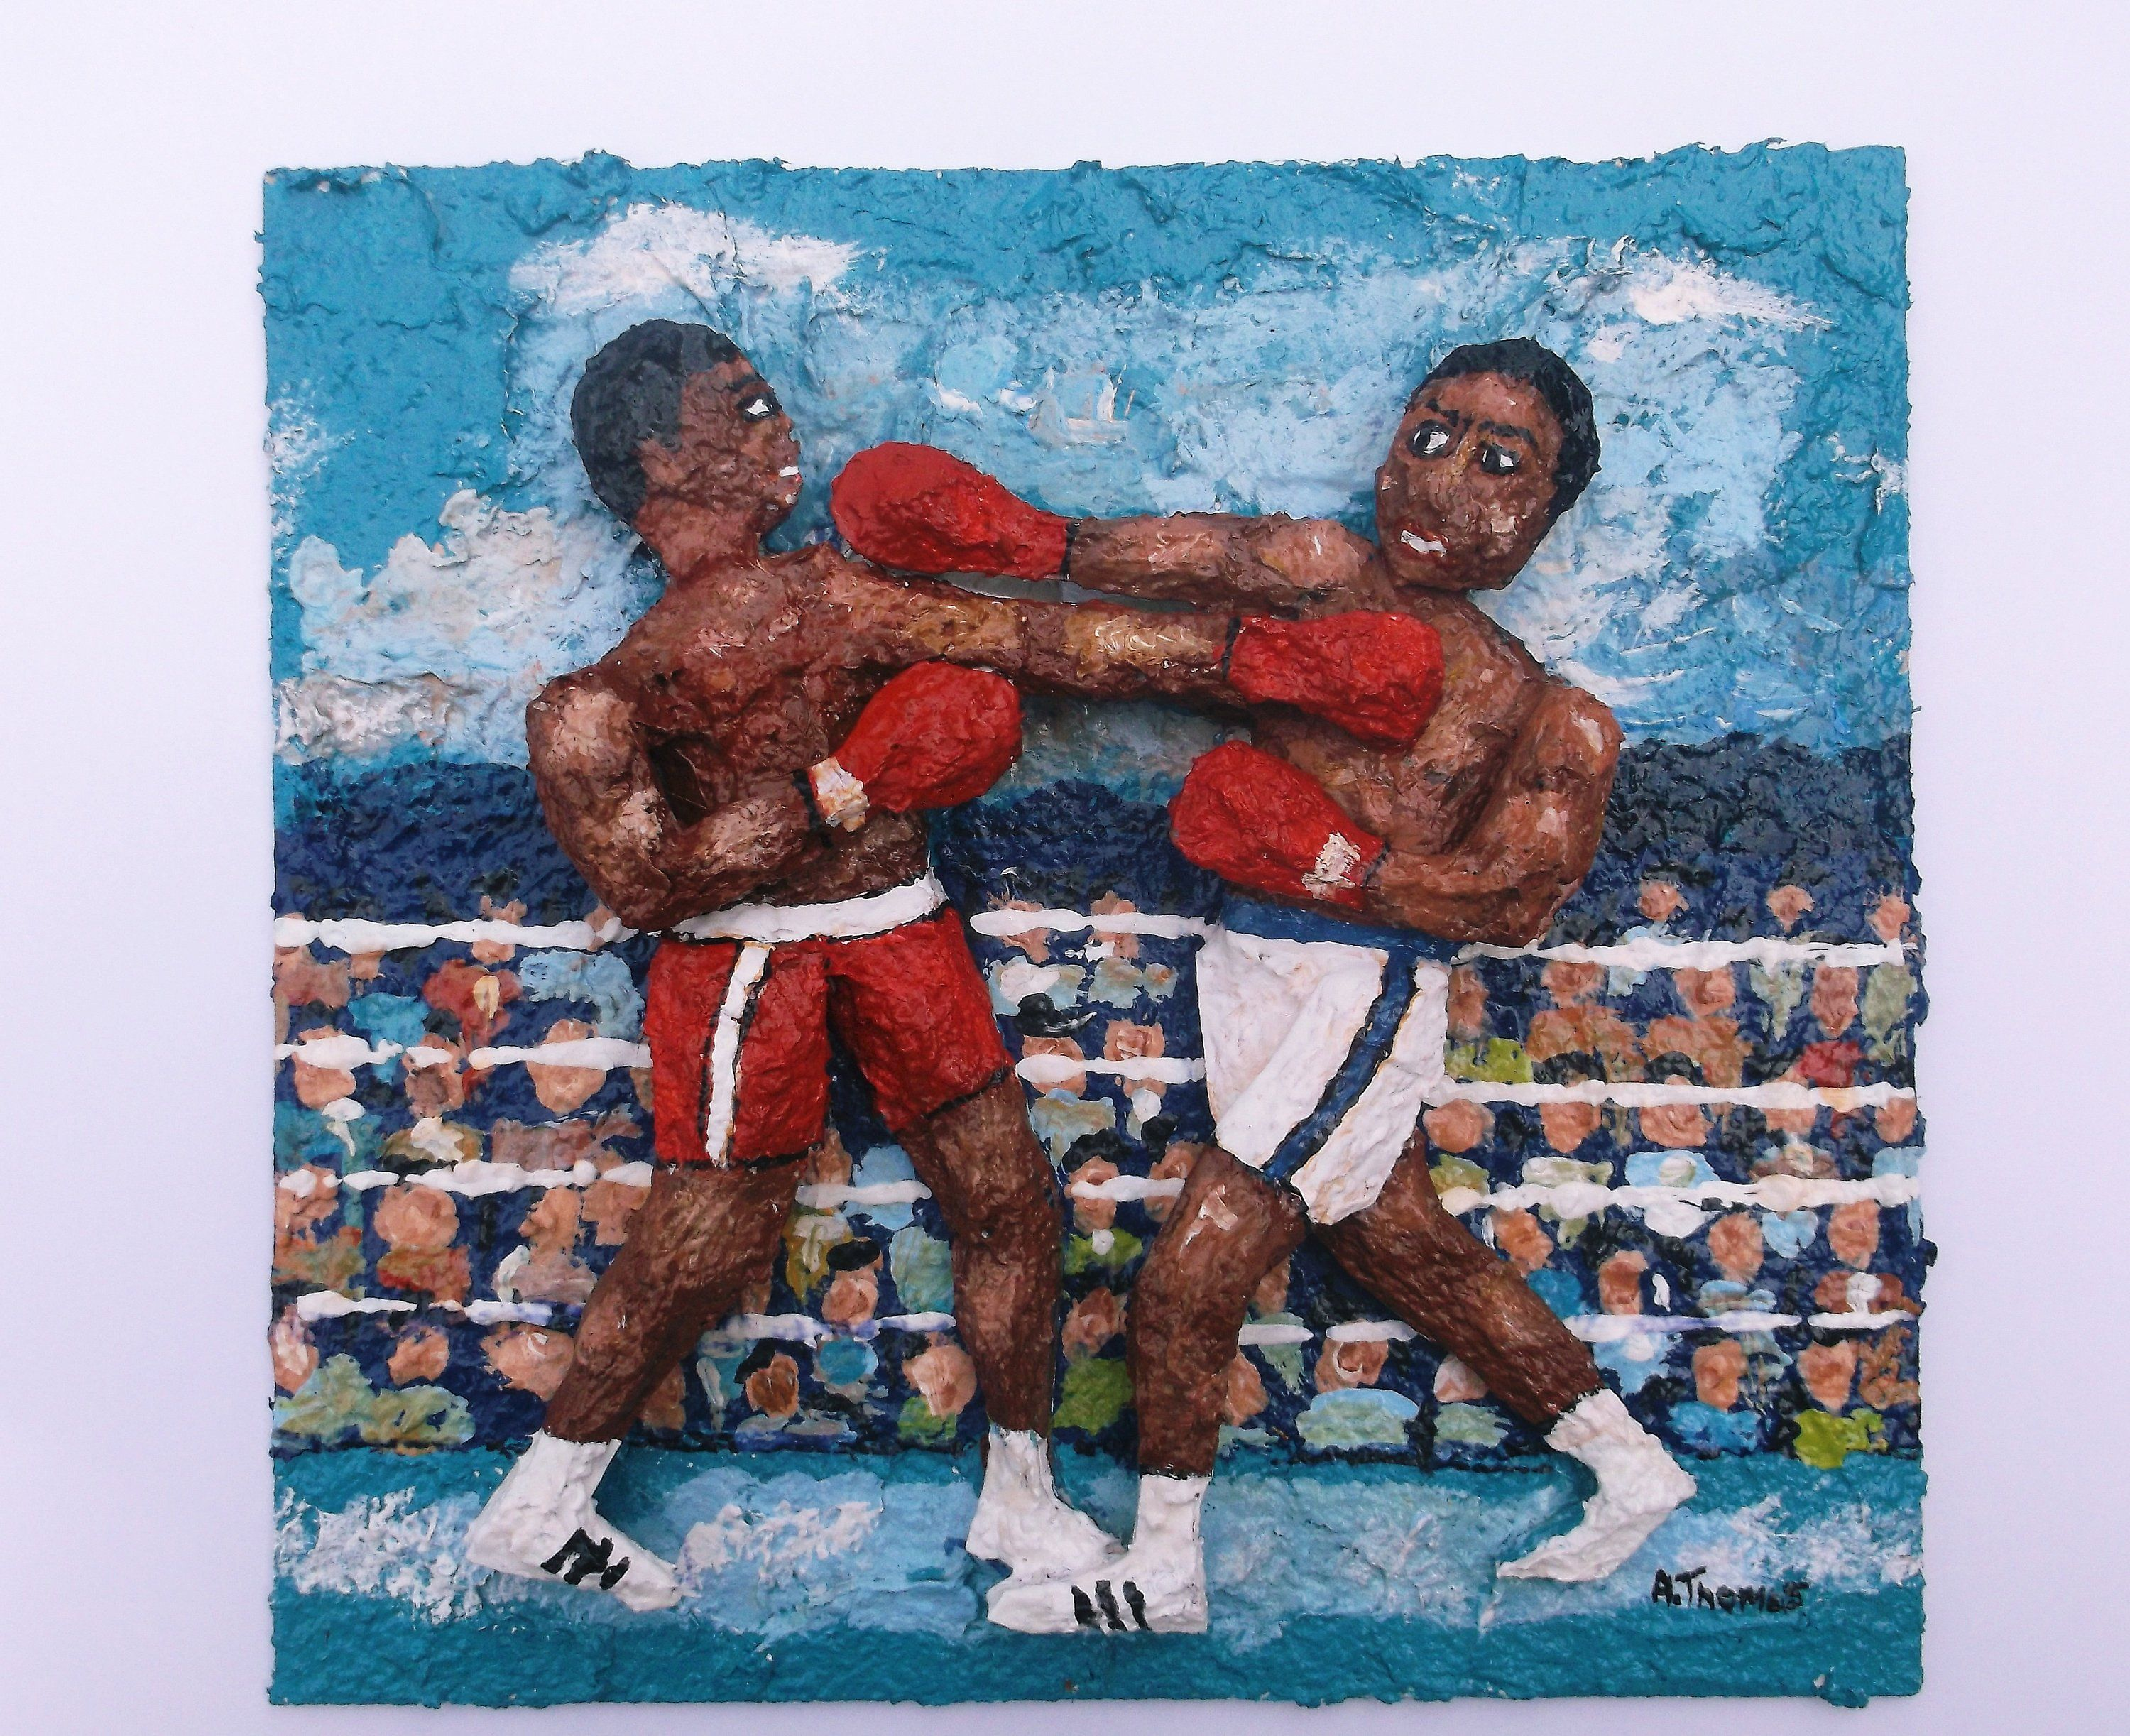 Boxers Original 3d Mixed Media Sports Art Boxing Painting Gift Championship Fighting By Sportsartbyathomas On Etsy Sports Art Painted Boxes Art